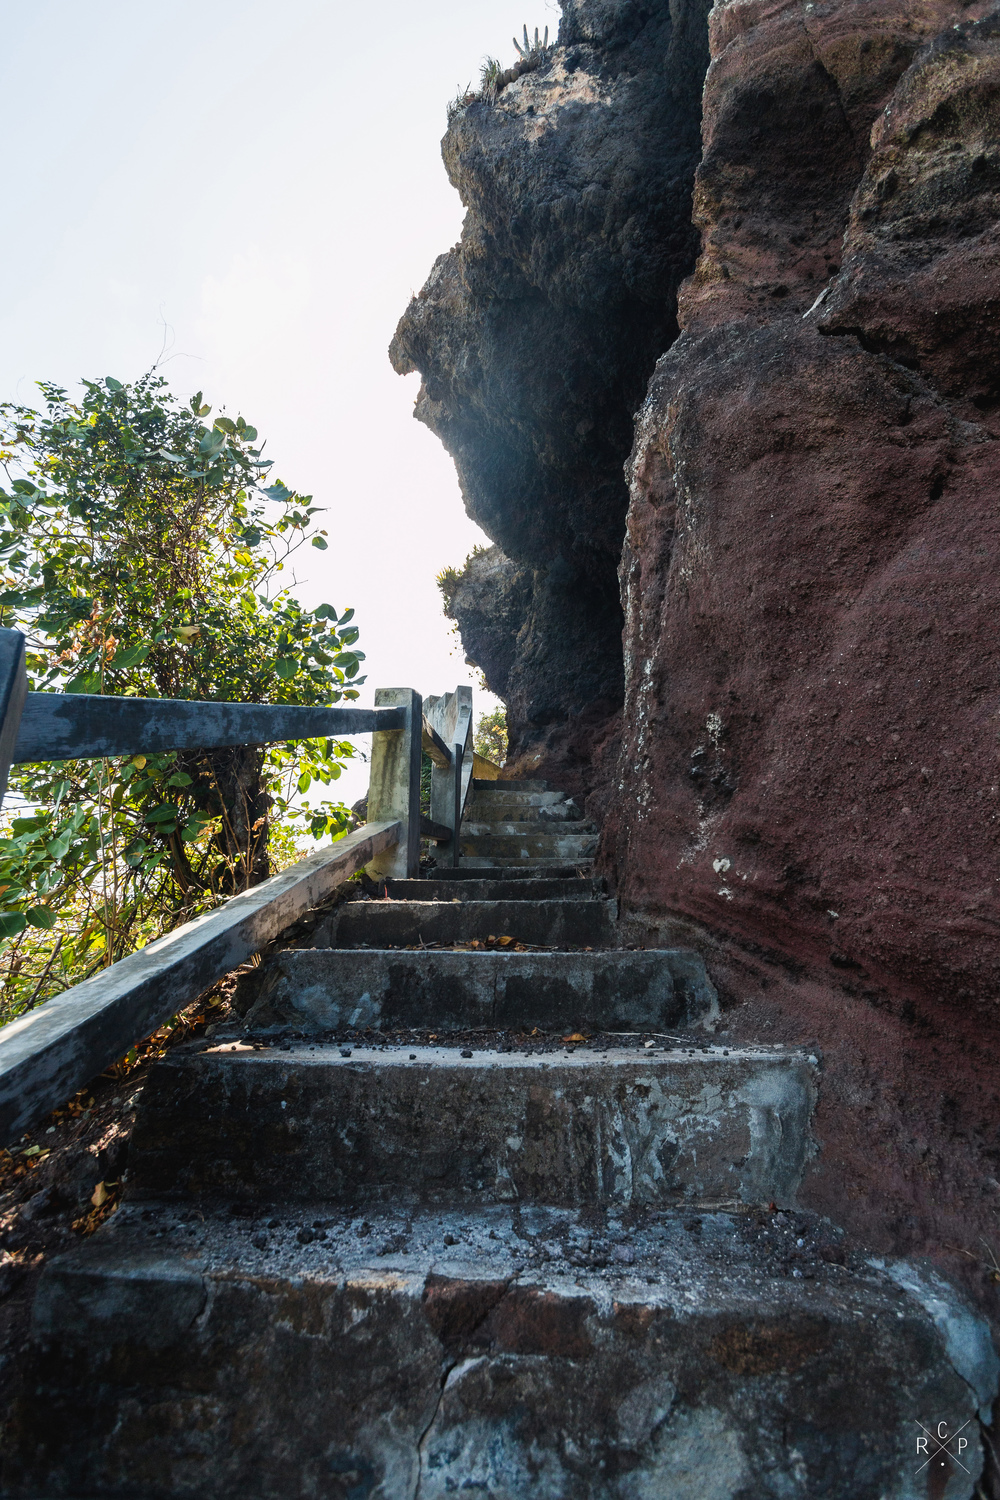 Ascending Stairs 2 - Fort Duvernette, St. Vincent & The Grenadines 09/02/2016